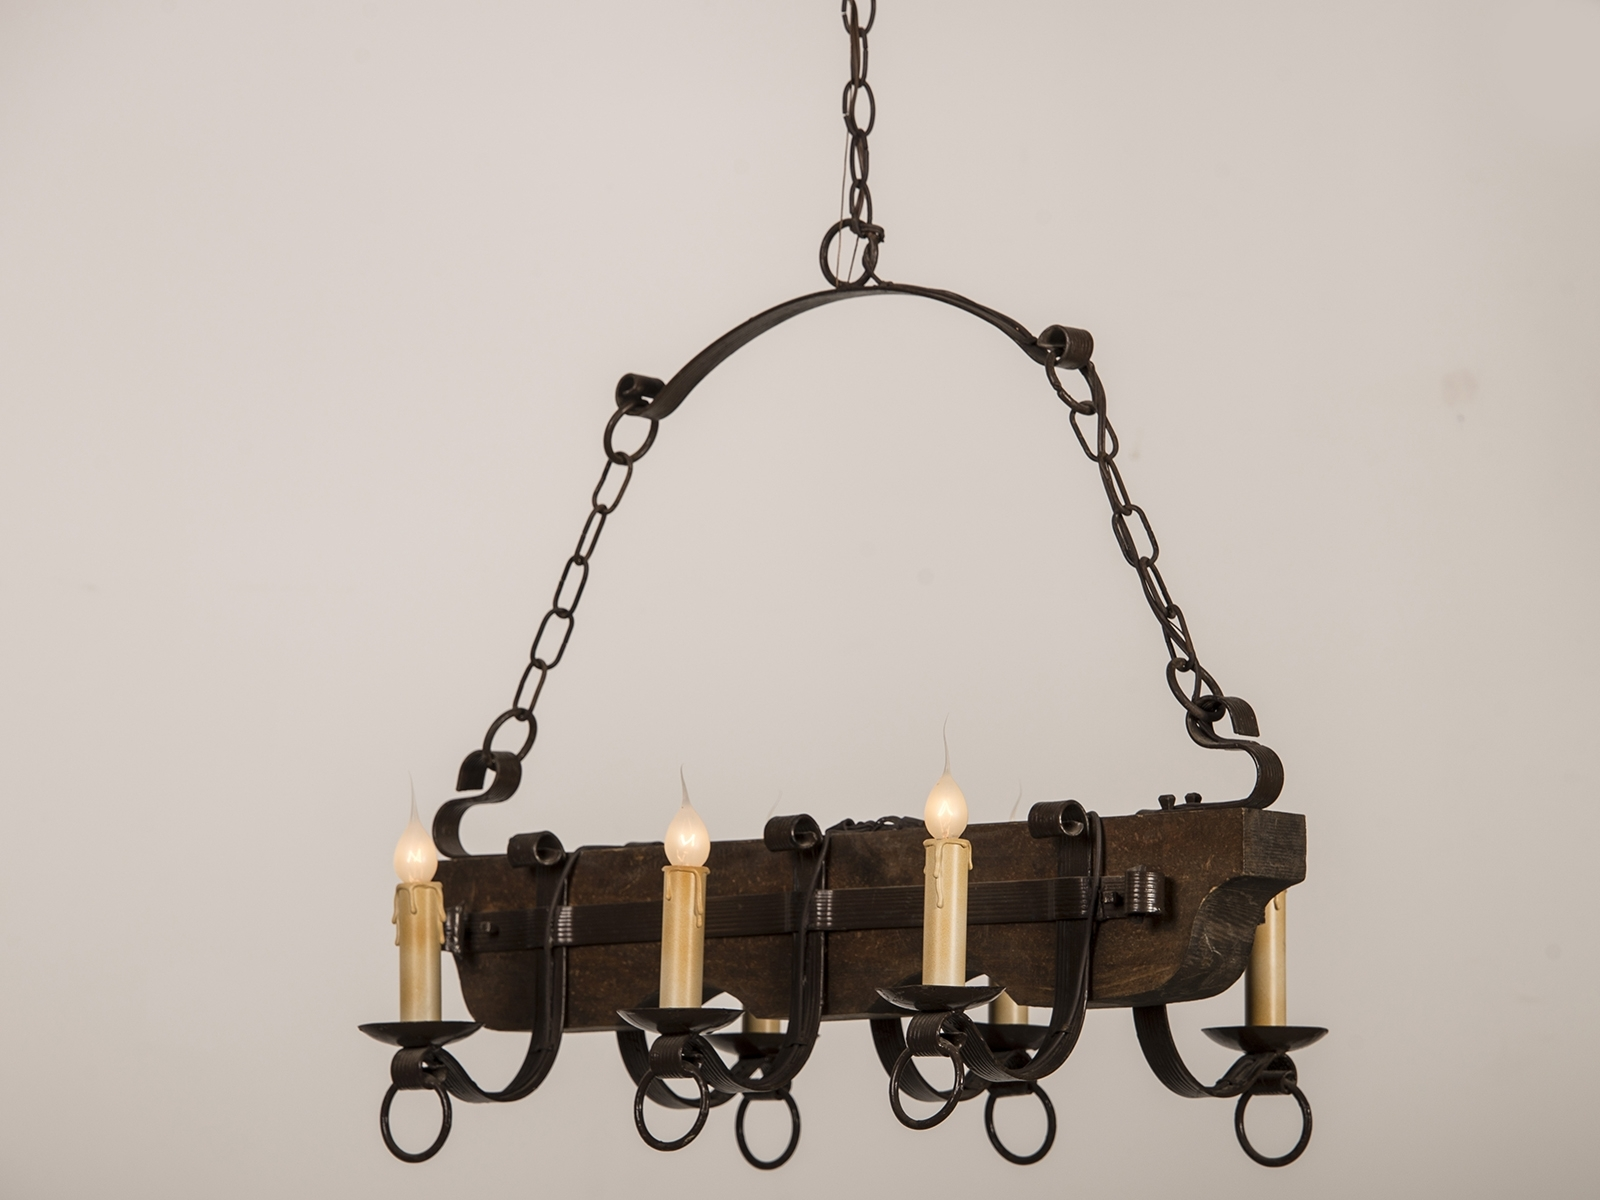 Well Known Old And Vintage Wood And Black Iron Chandelier With Candle Holder Intended For Vintage Wrought Iron Chandelier (View 14 of 15)